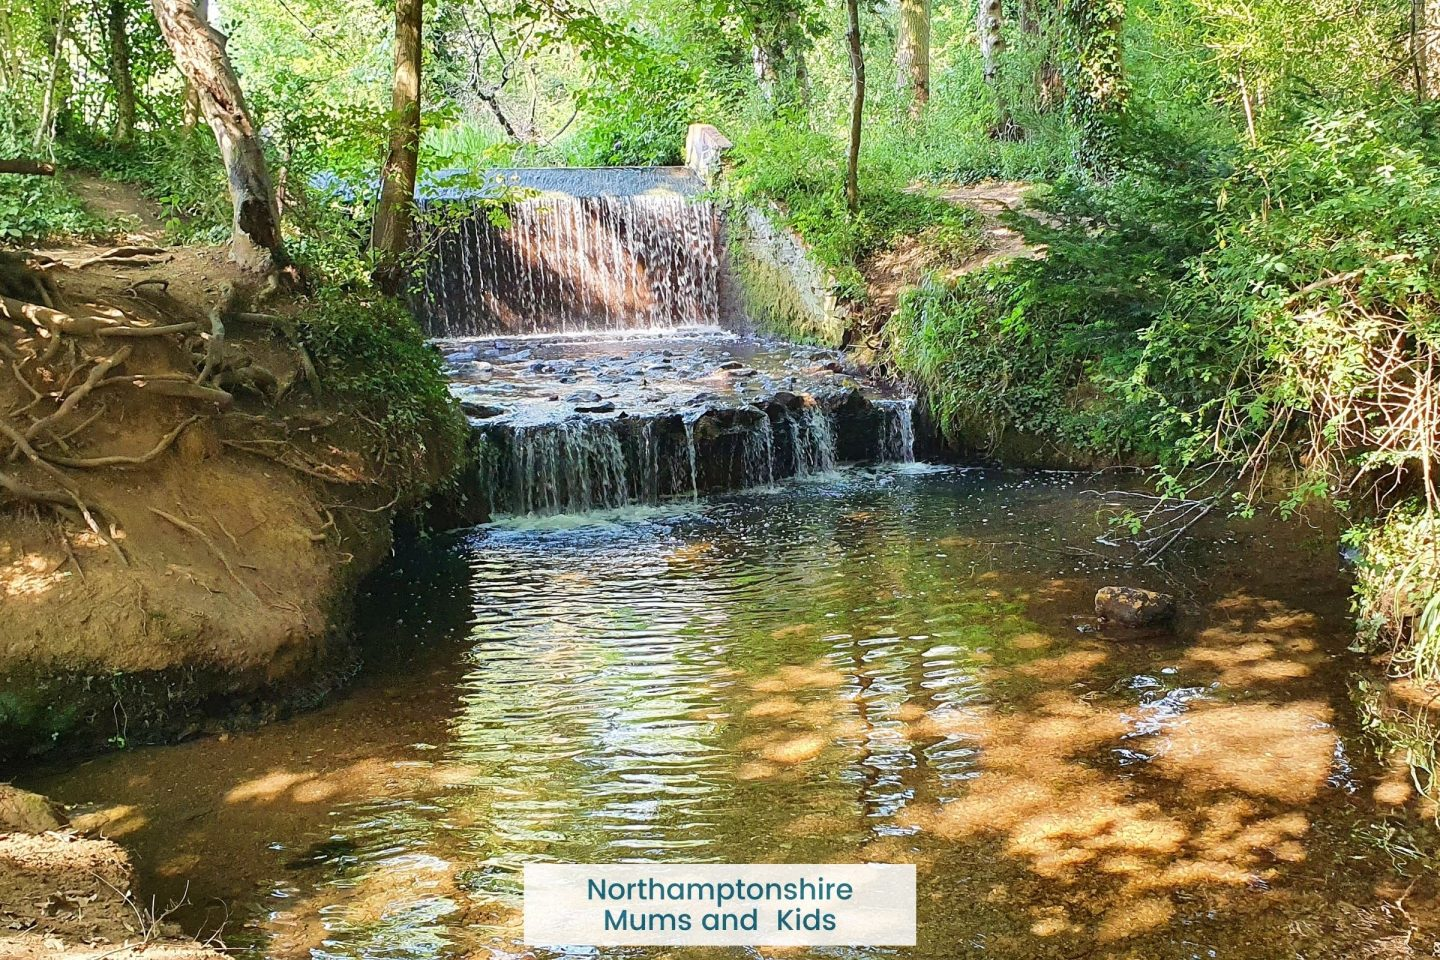 Multiple family days out can get expensive. So, here is a list of different free things to do in Northamptonshire with the kids.